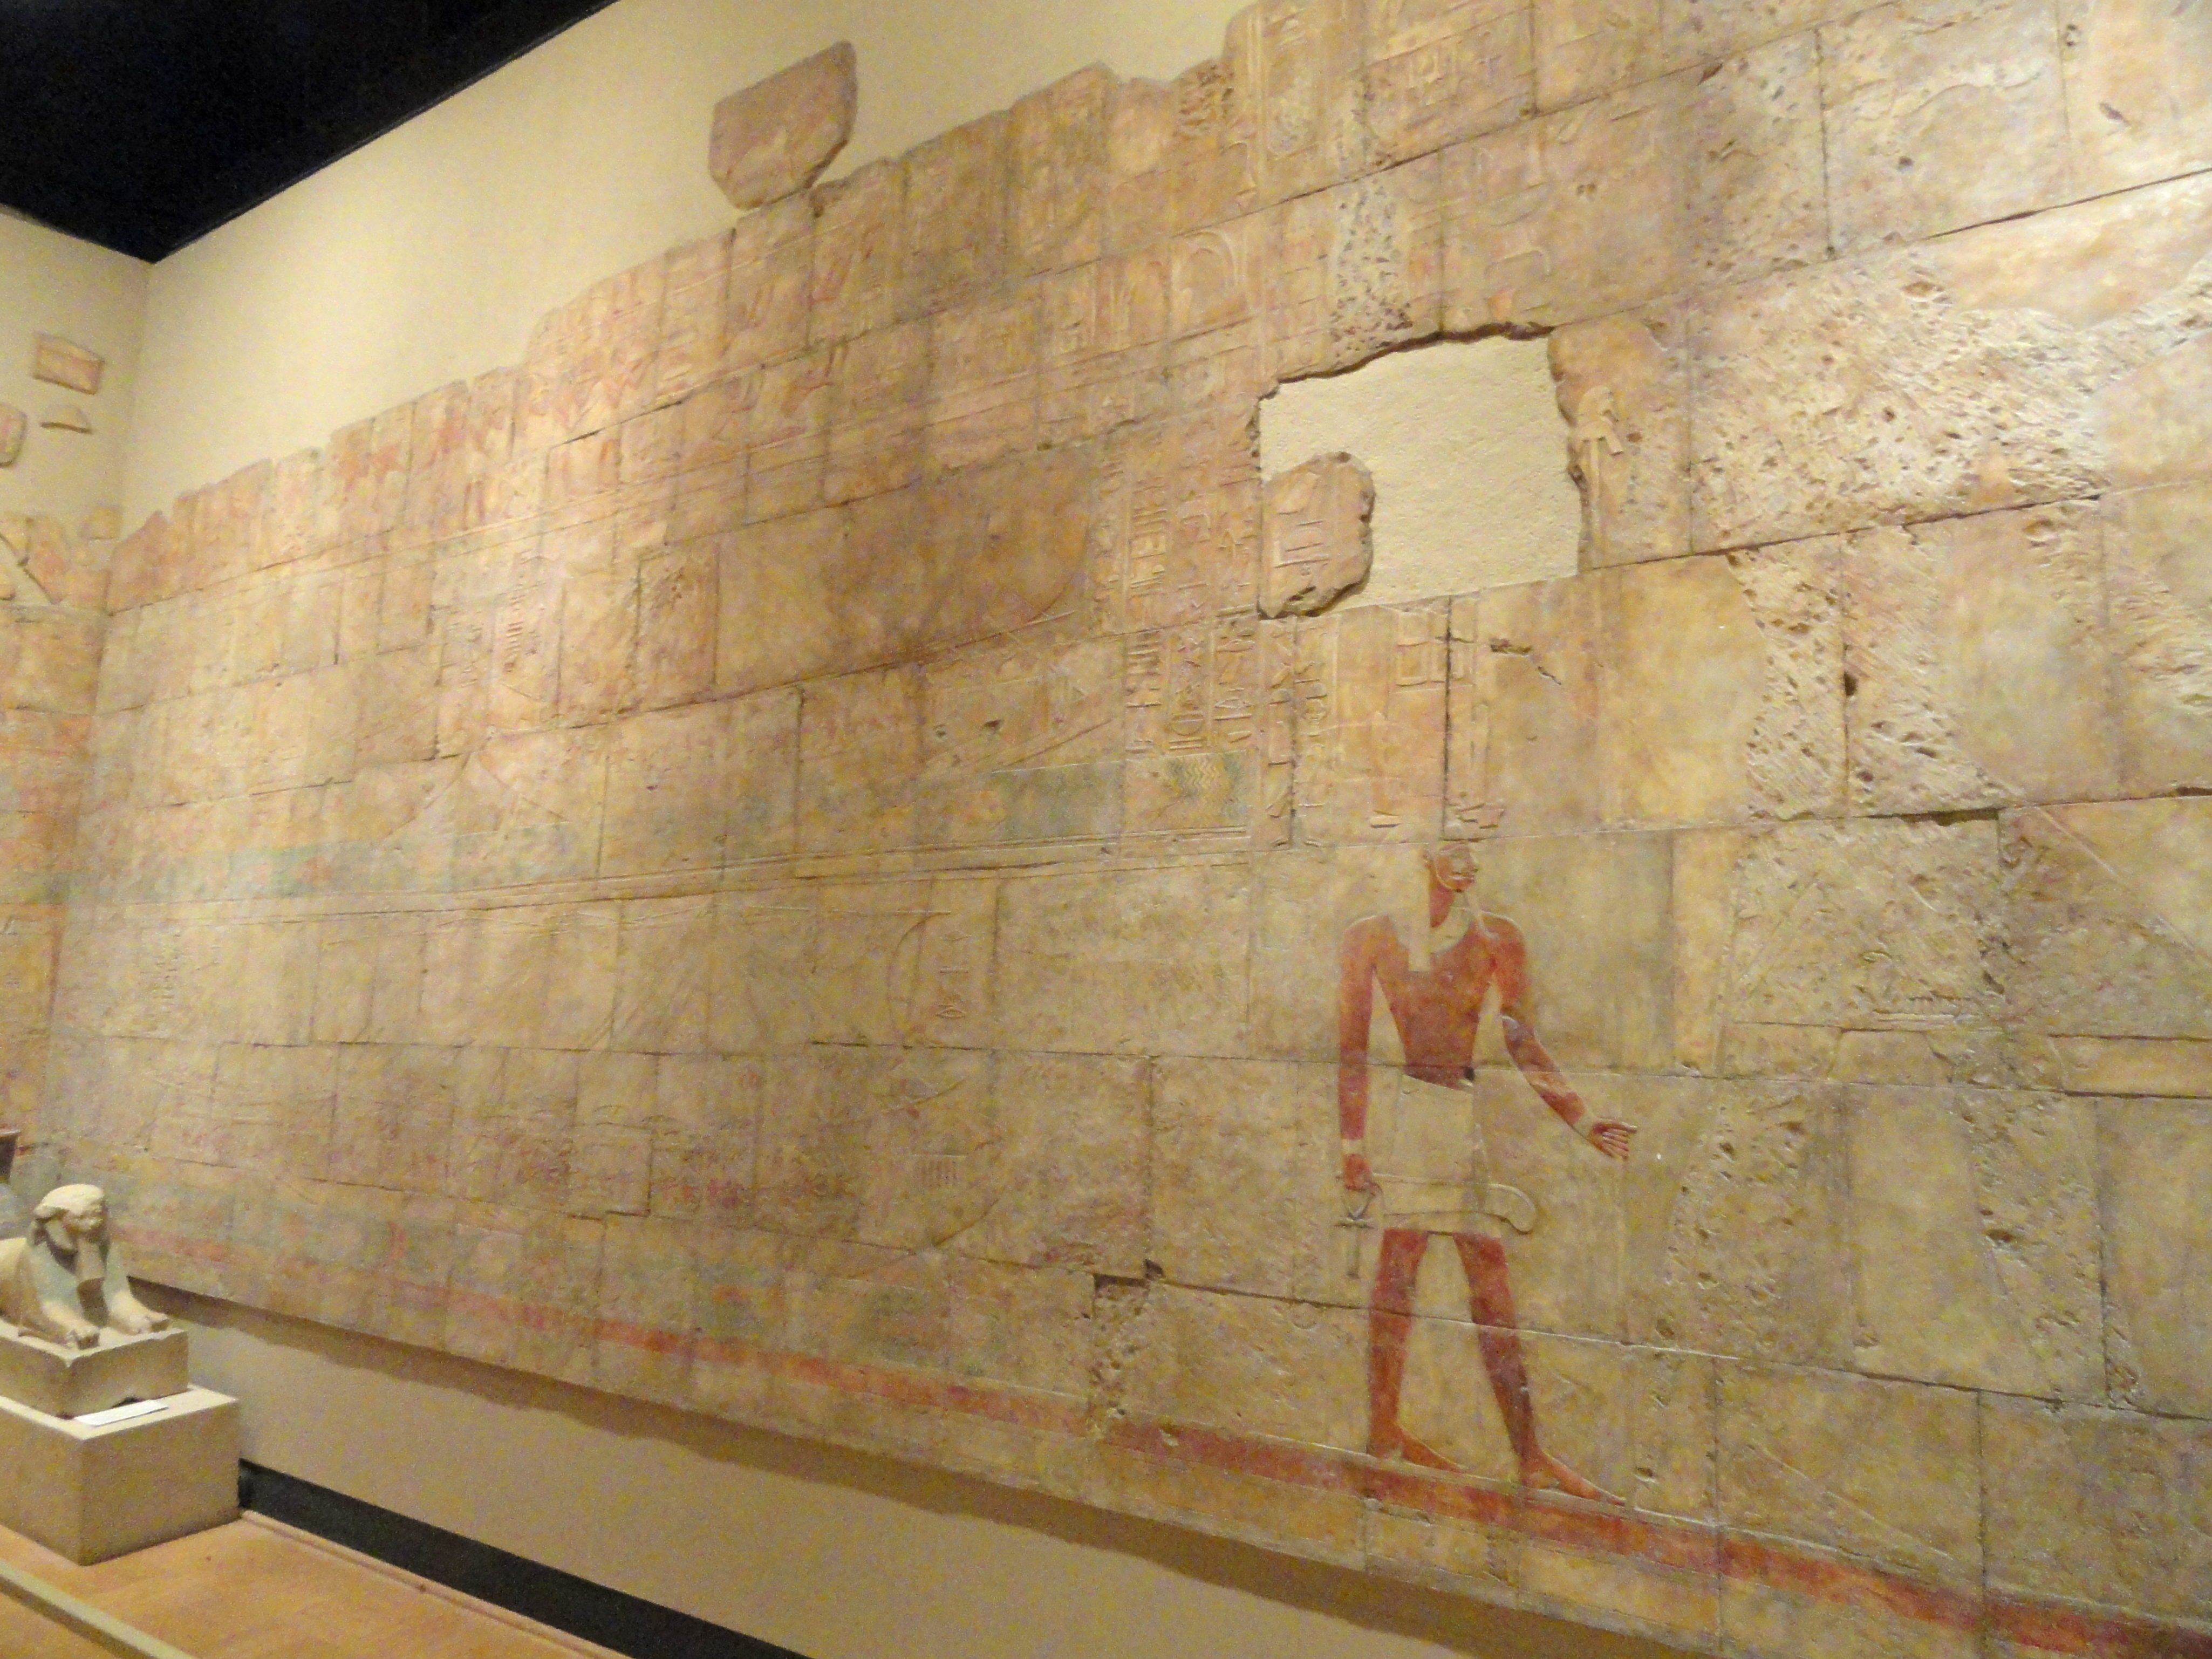 The plaster cast of Pharoah Hatshepsut's voyage to Punt from her tomb at Deir el-Bahri. Photo by Daderot via Wikimedia Commons.